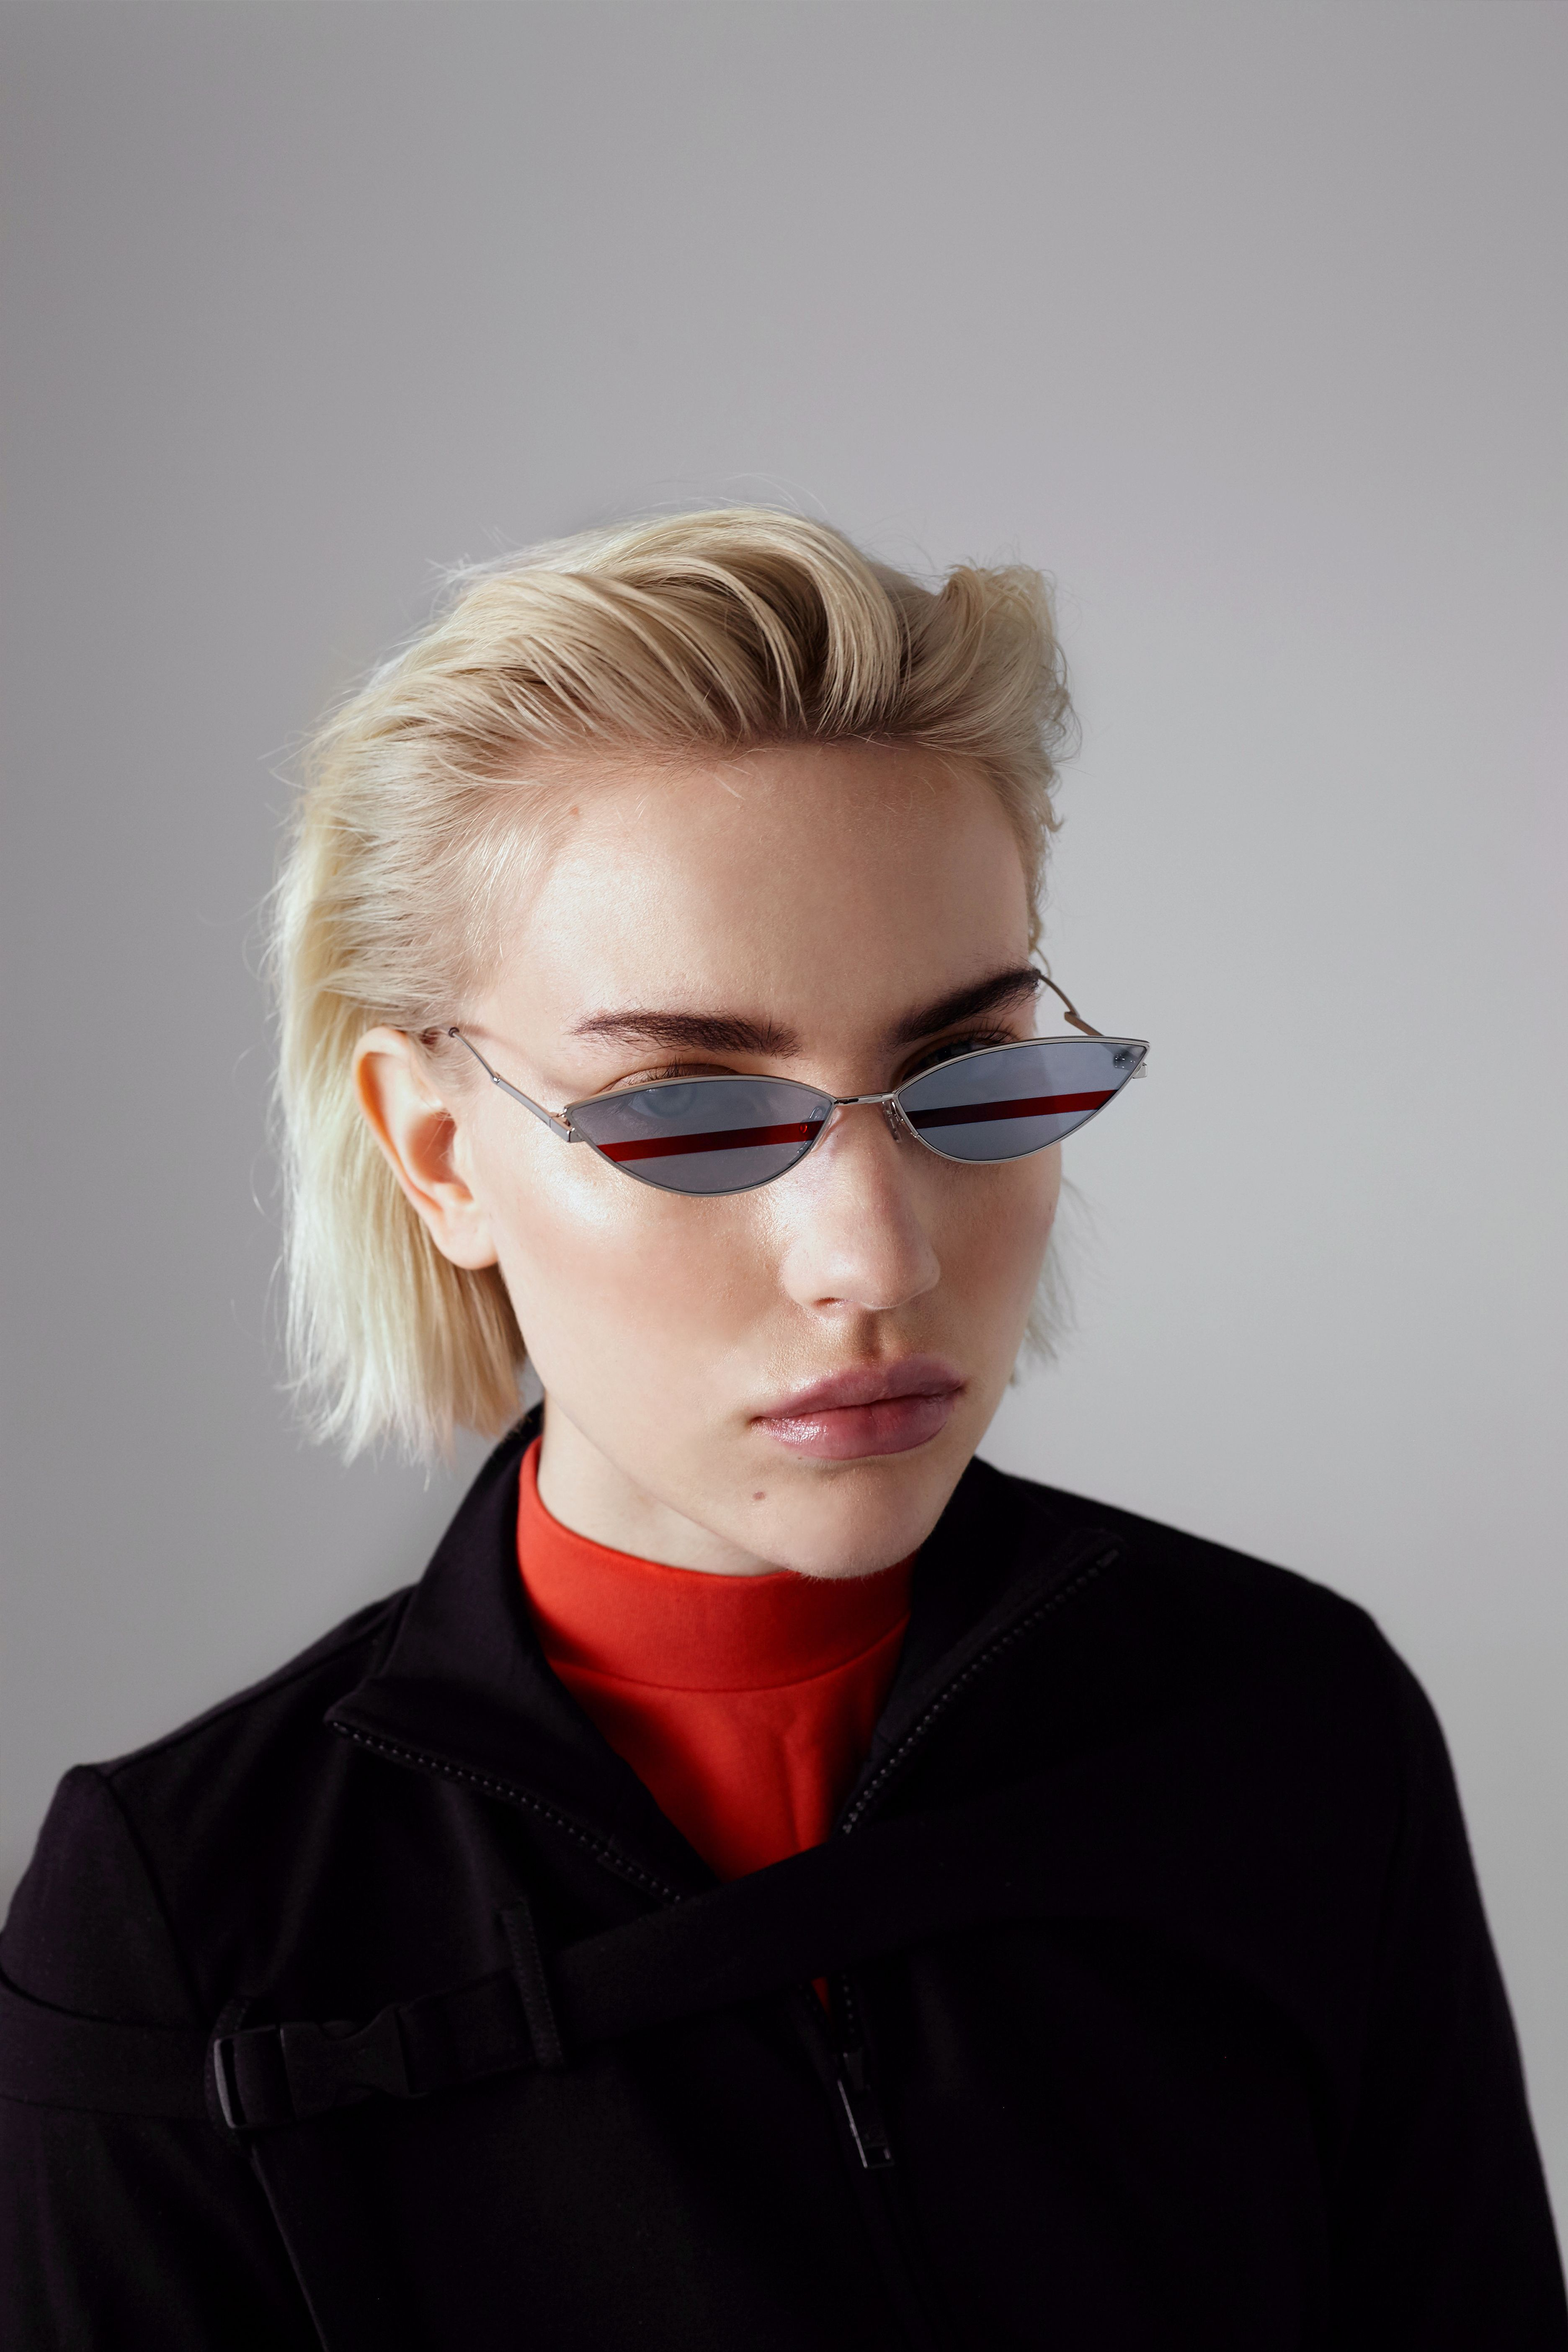 11efd417fdd8 2018 NEW SUNGLASSES LOOKBOOK Poxi 02(1M) from RED WIDE OPEN collection   gentlemonster  sunglasses  lookbook  redwideopen  fashion  poxi